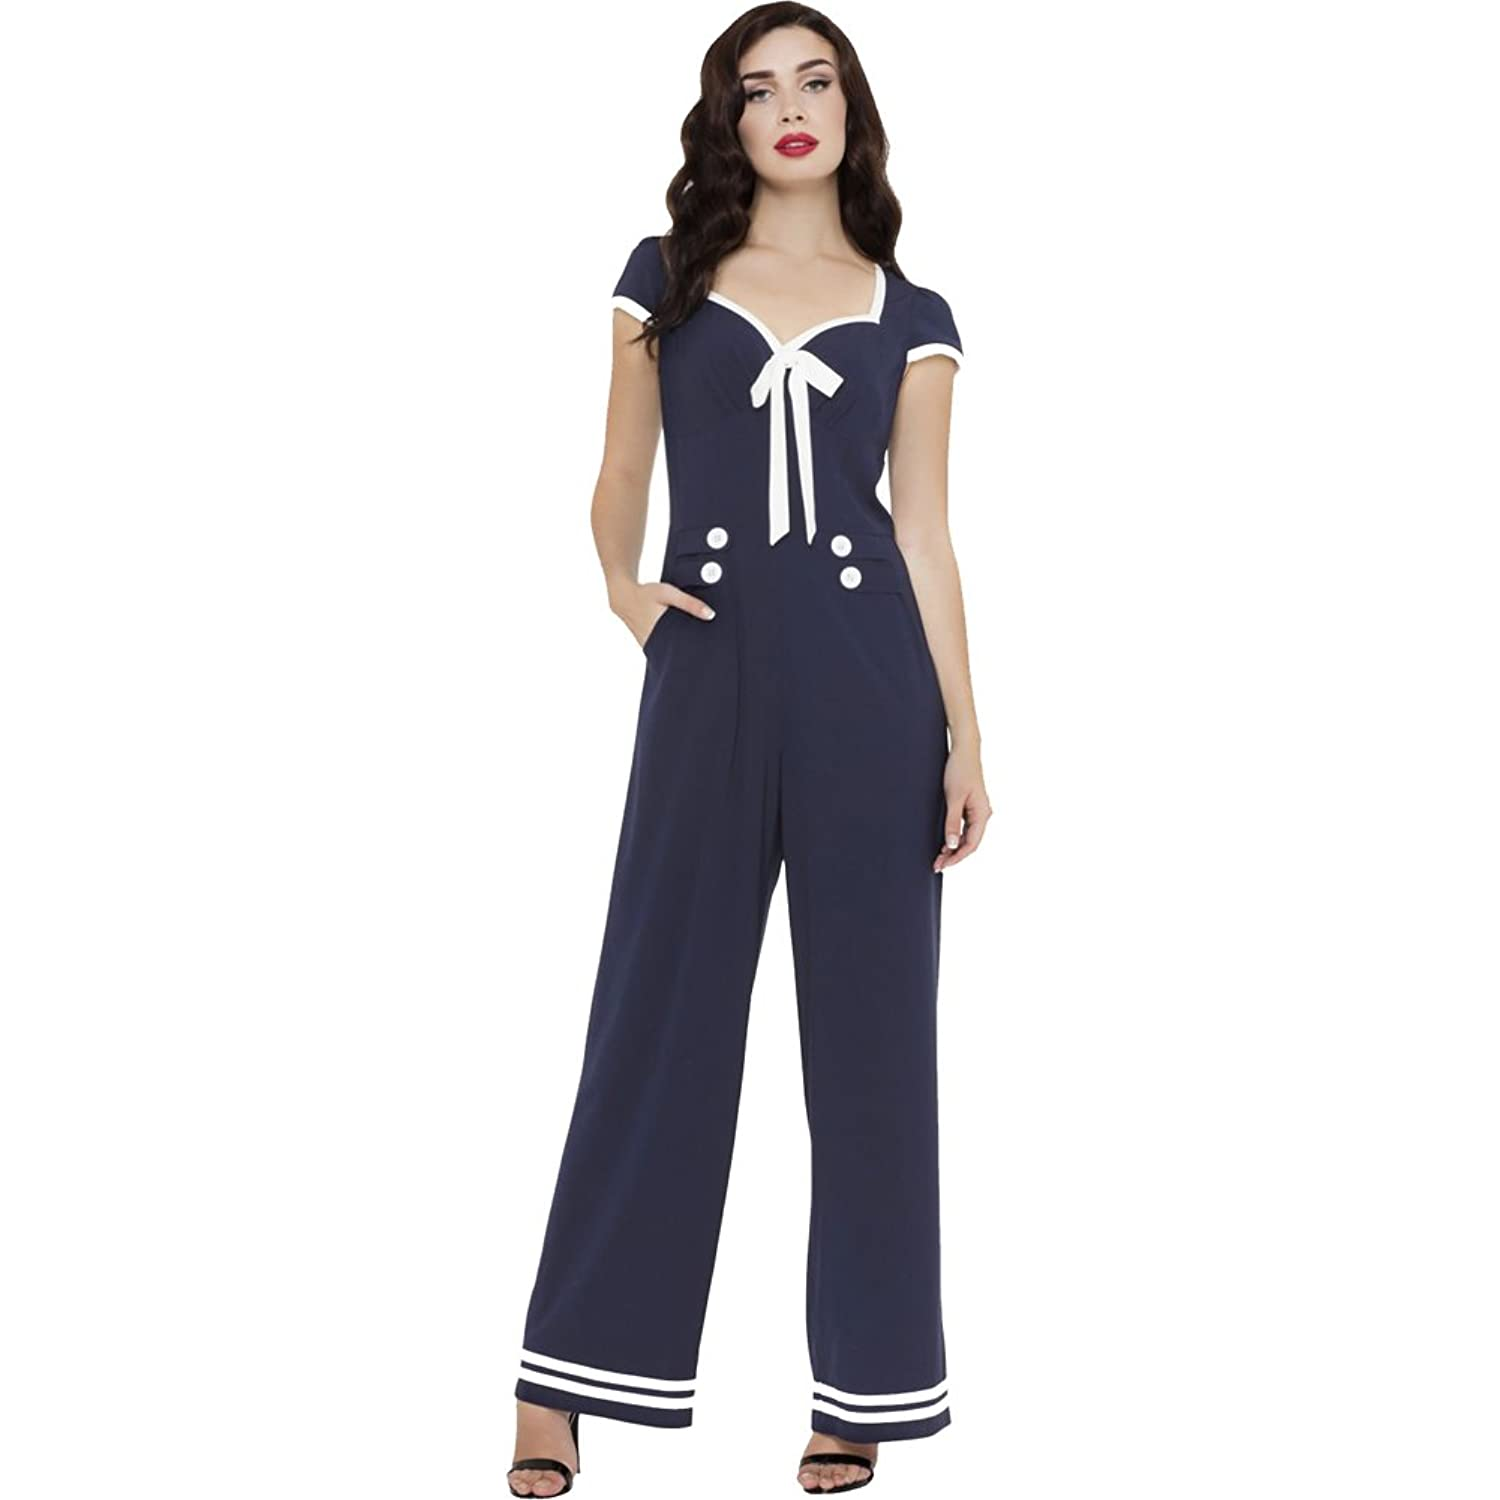 Agent Peggy Carter Costume, Dress, Hats Womens Voodoo Vixen JOLENE Nautical Stripped Wide Leg Jumpsuit Navy $73.95 AT vintagedancer.com